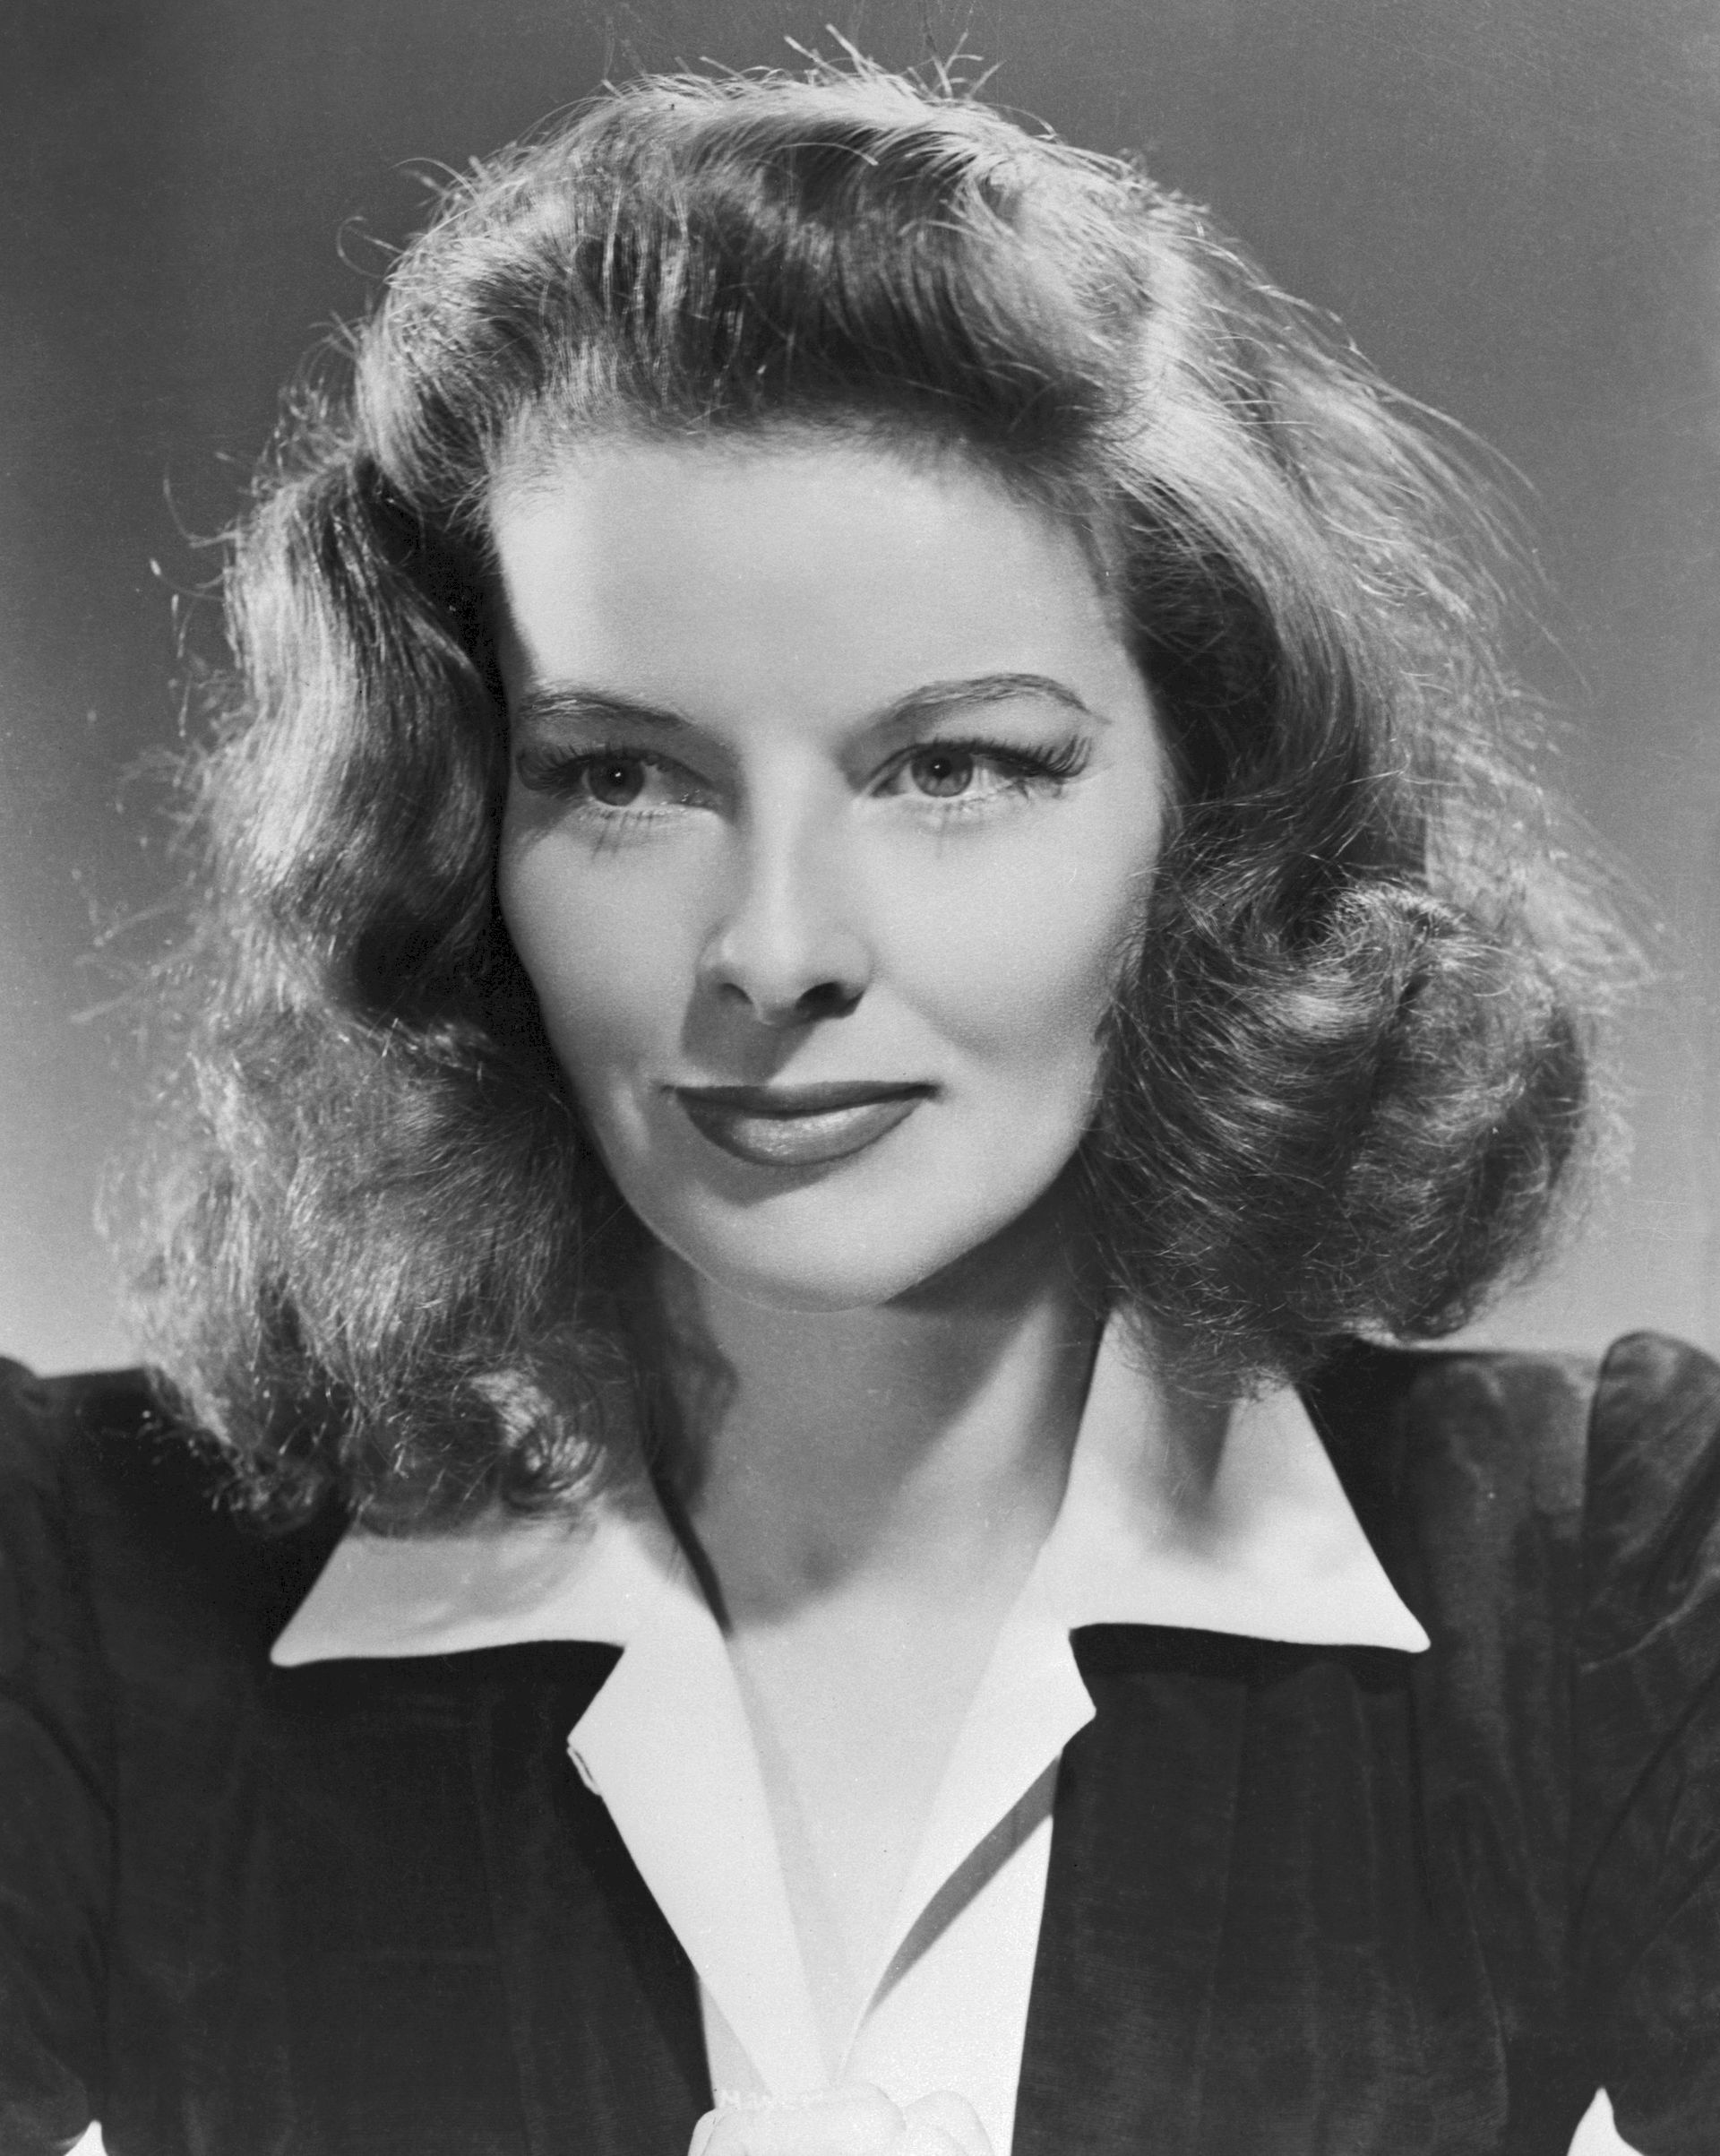 Photo of Katharine Hepburn: Film, stage, and television actress